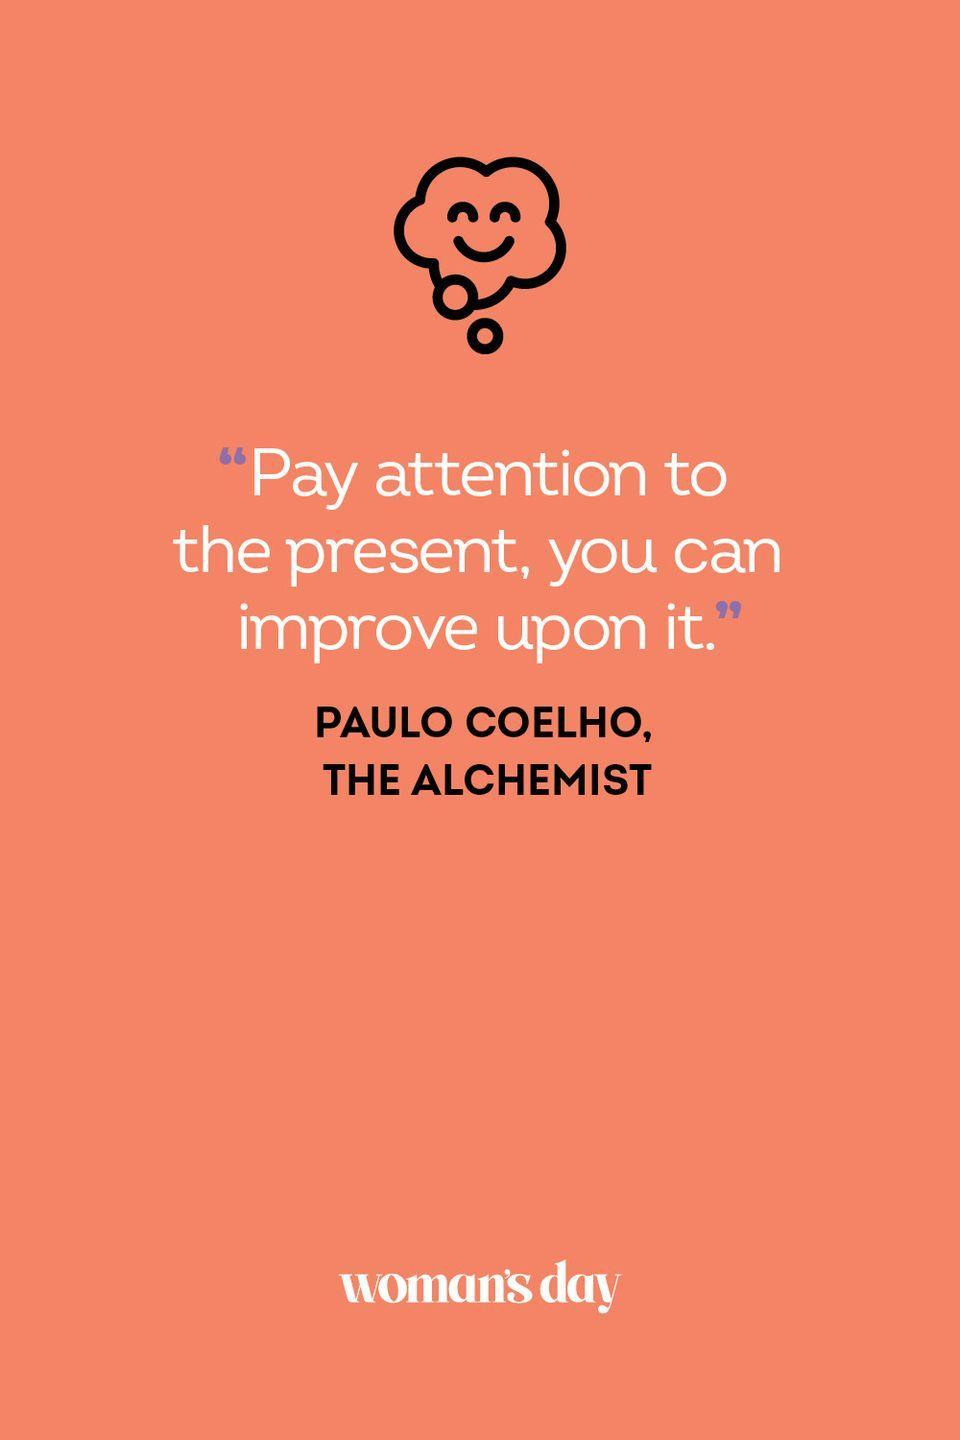 <p>Pay attention to the present, you can improve upon it.</p>